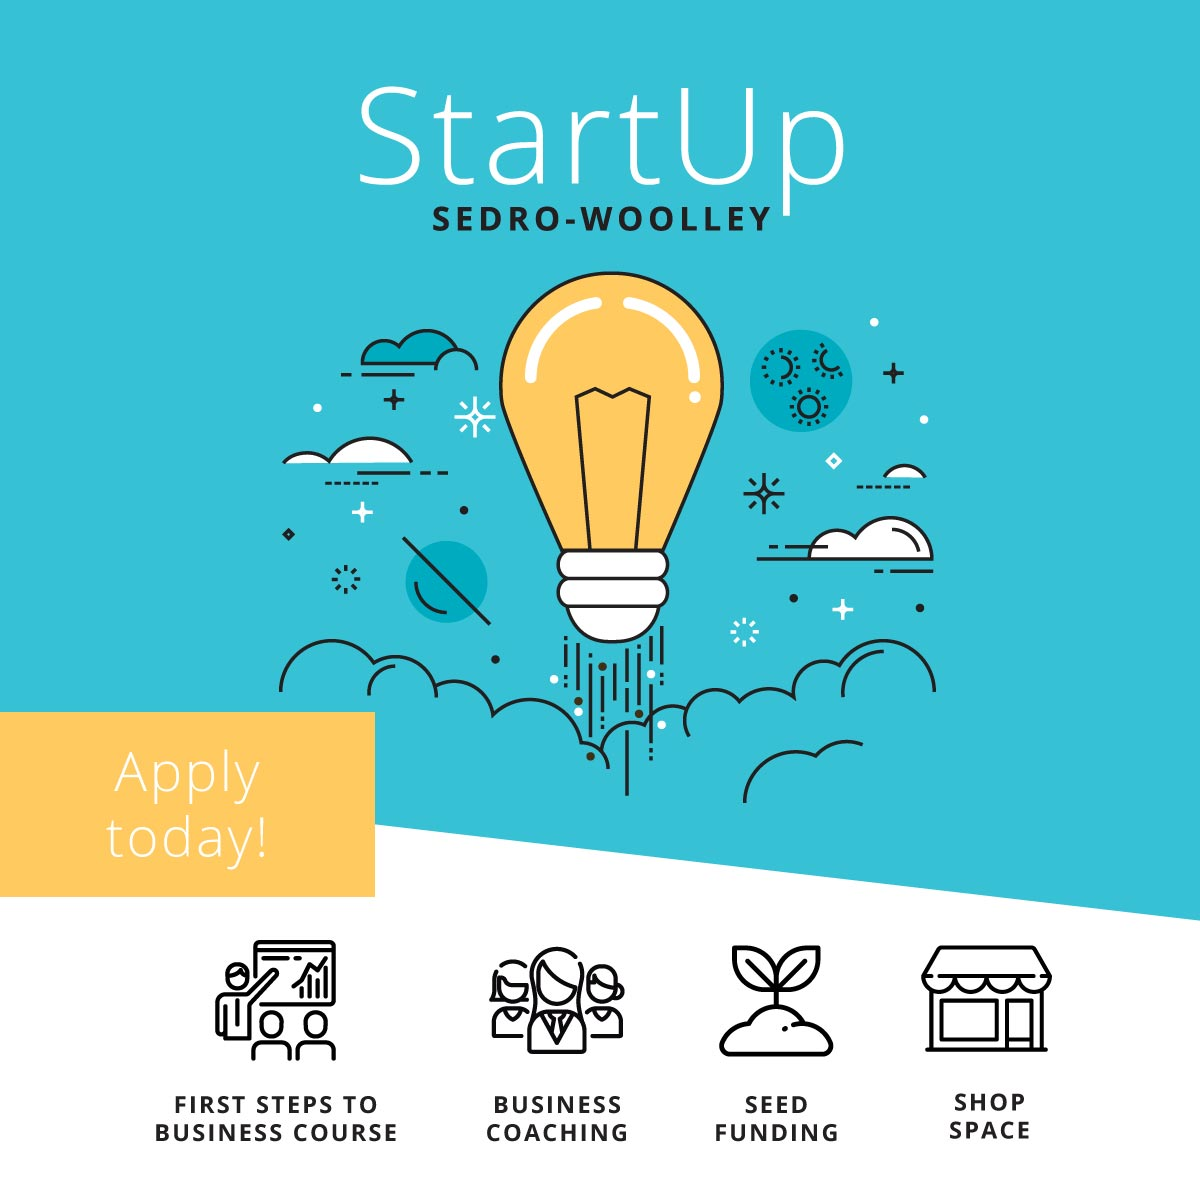 APPLICATION DEADLINE IS 4/26/19 Apply Here:   https://www.downtownsedrowoolley.com/startup-sedro-woolley